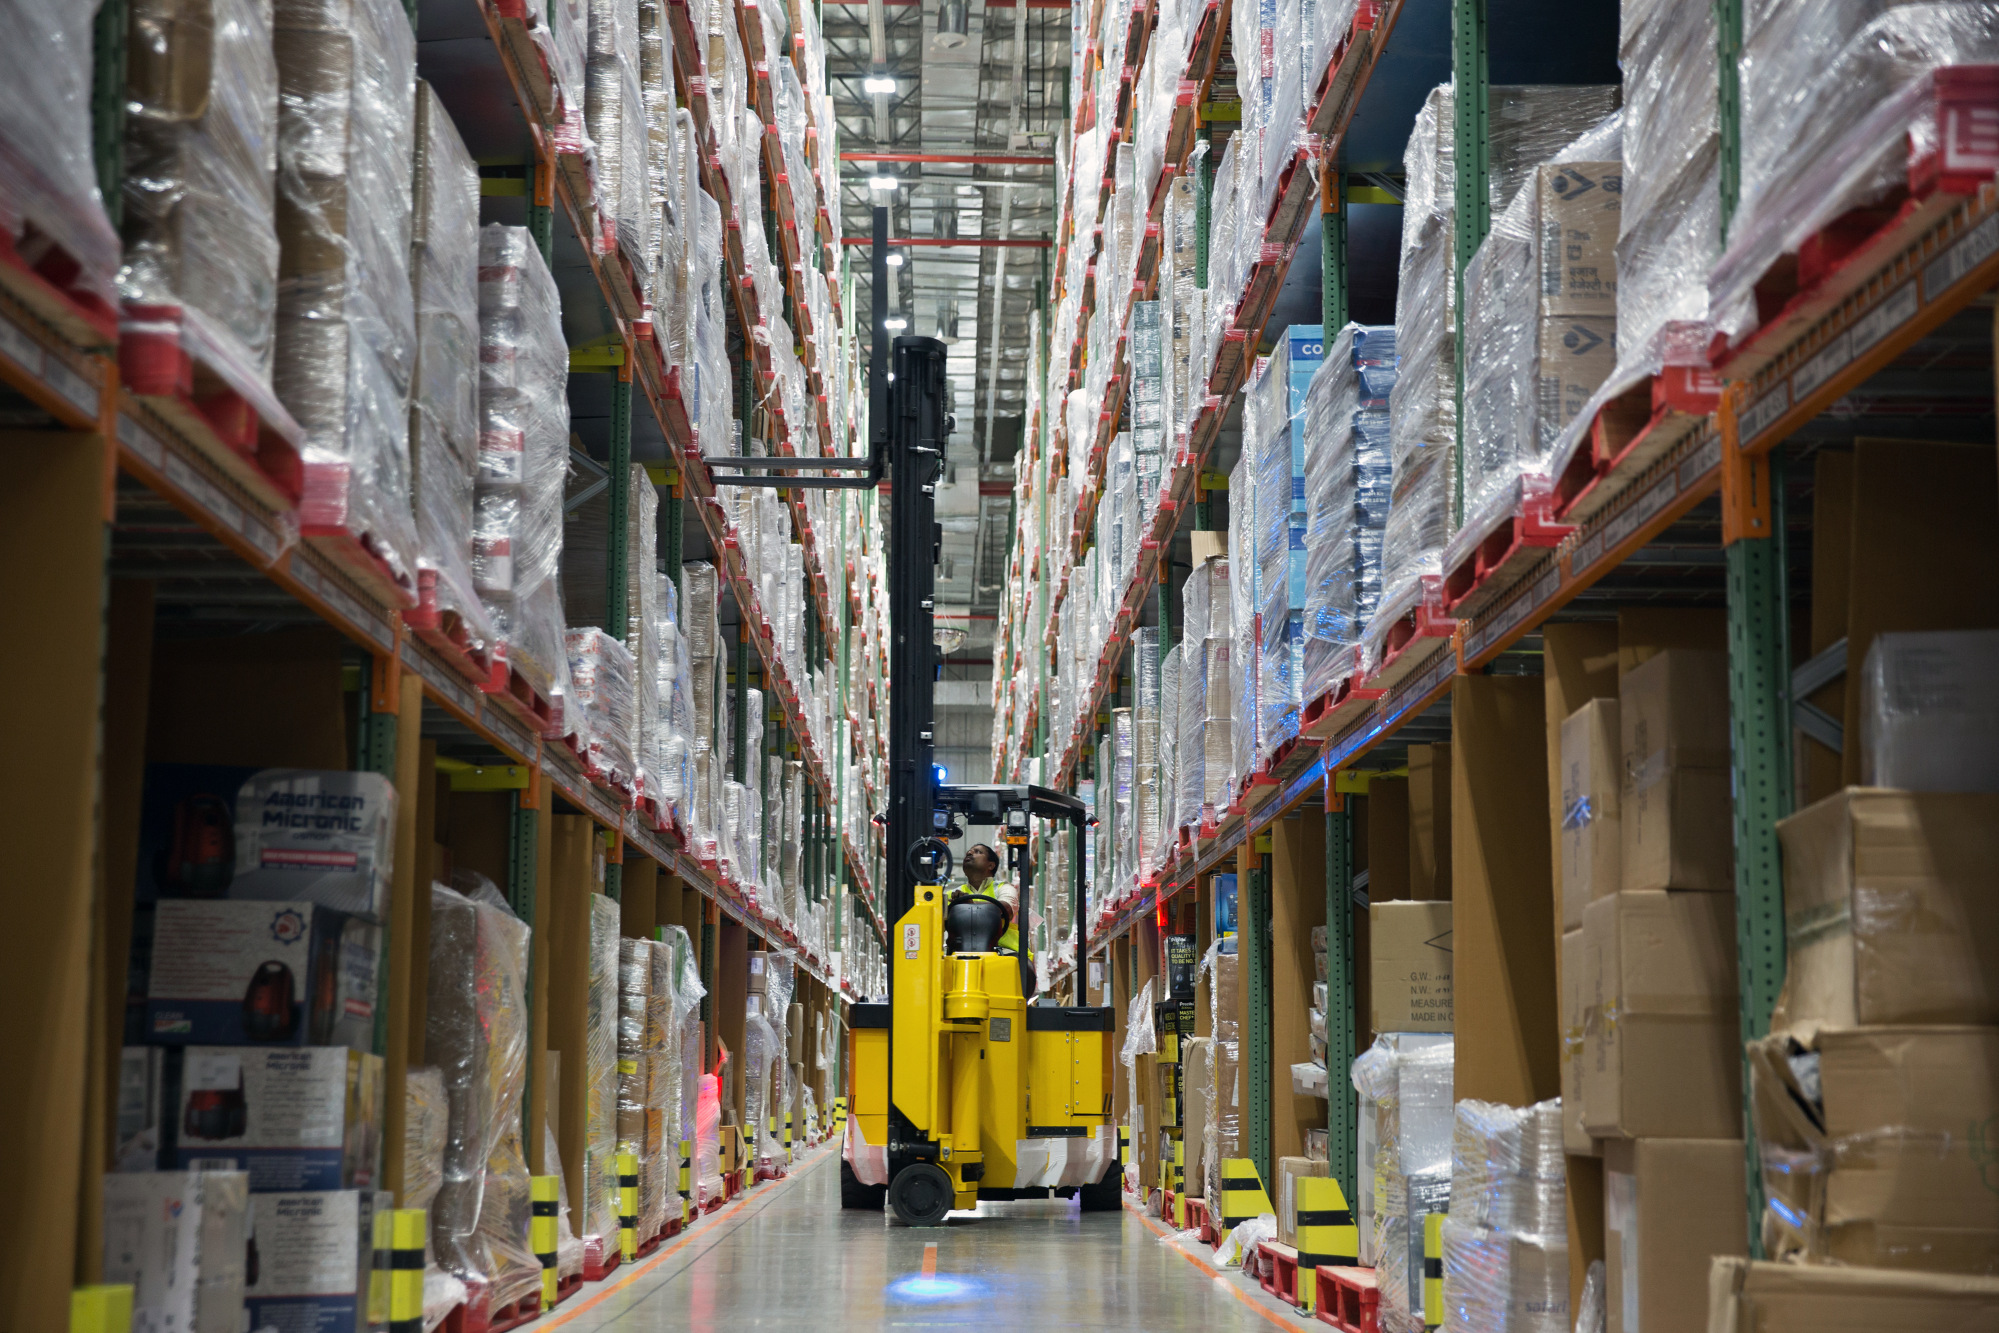 A worker uses a forklift to remove a pallet of goods from a storage rack in an aisle at the Amazon Inc. fulfillment center in Bengaluru, India.